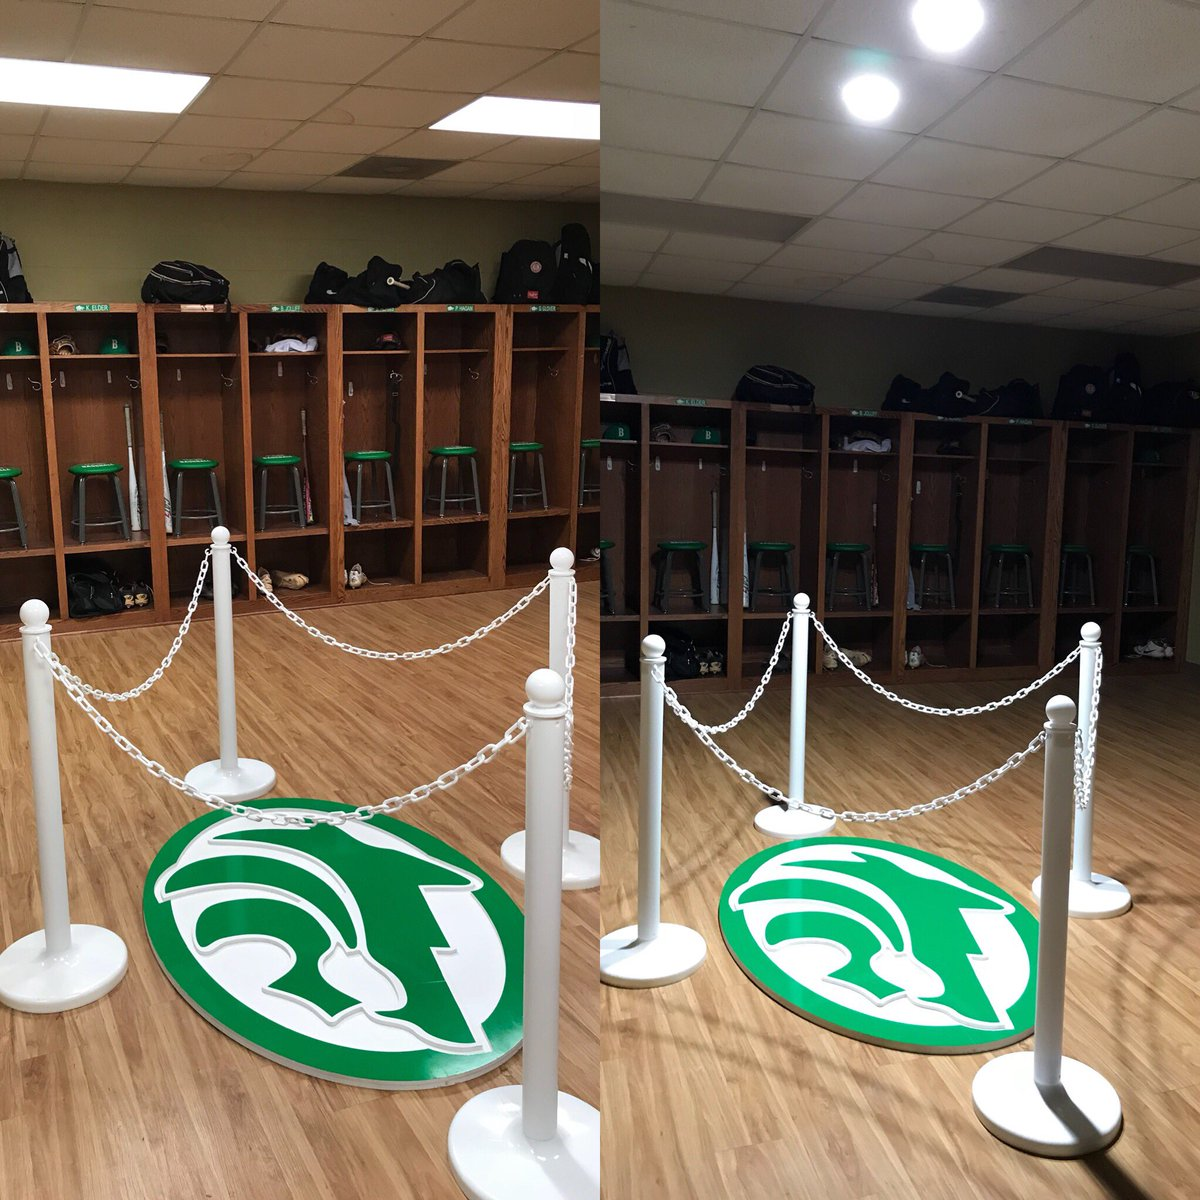 Buford Hs Baseball On Twitter When The Locker Room Is Empty And